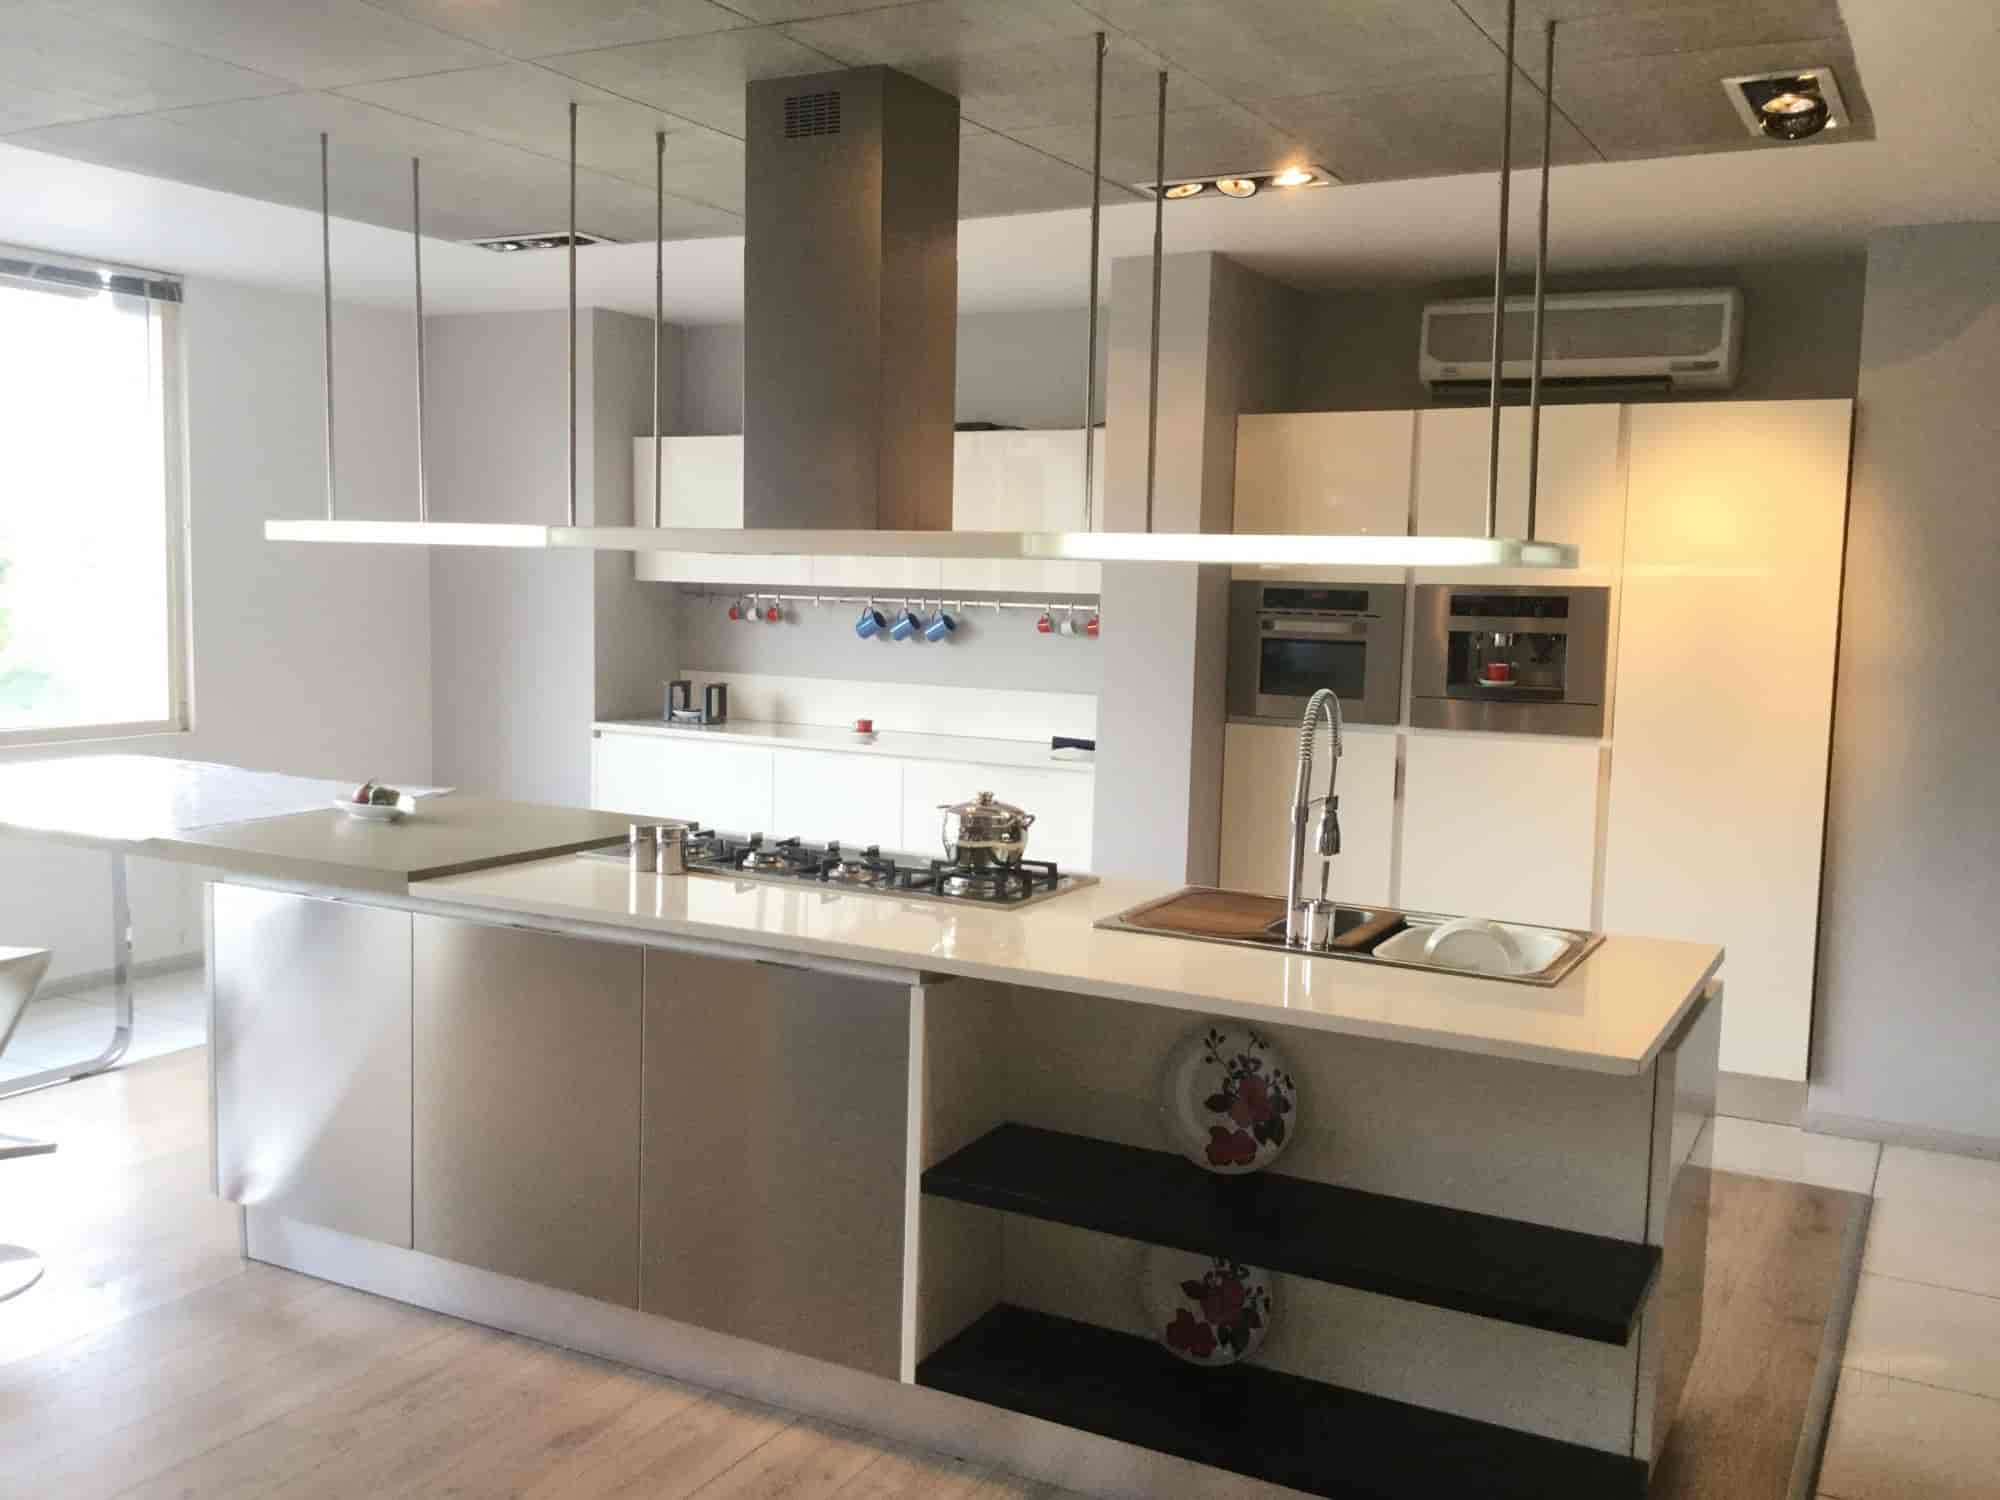 Veneta Cucine - CC India Pvt Ltd, Jubilee Hills - Modular Kitchen ...